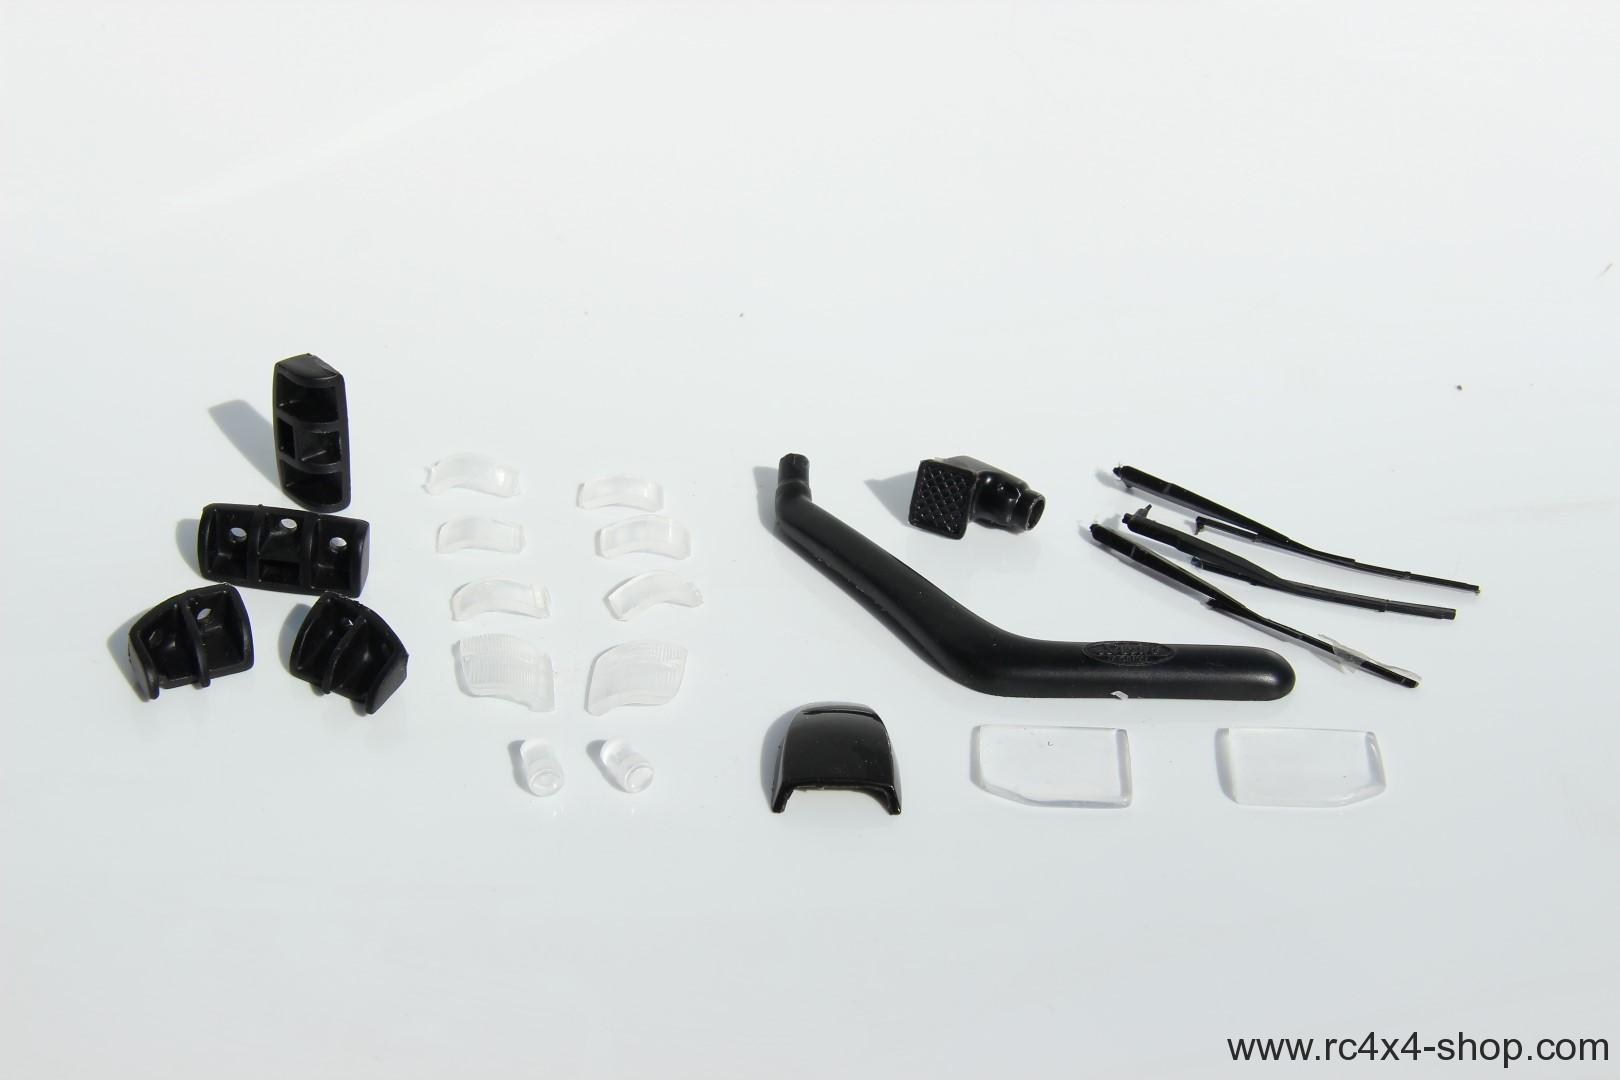 Small set of accessories for Mitsubishi Pajero